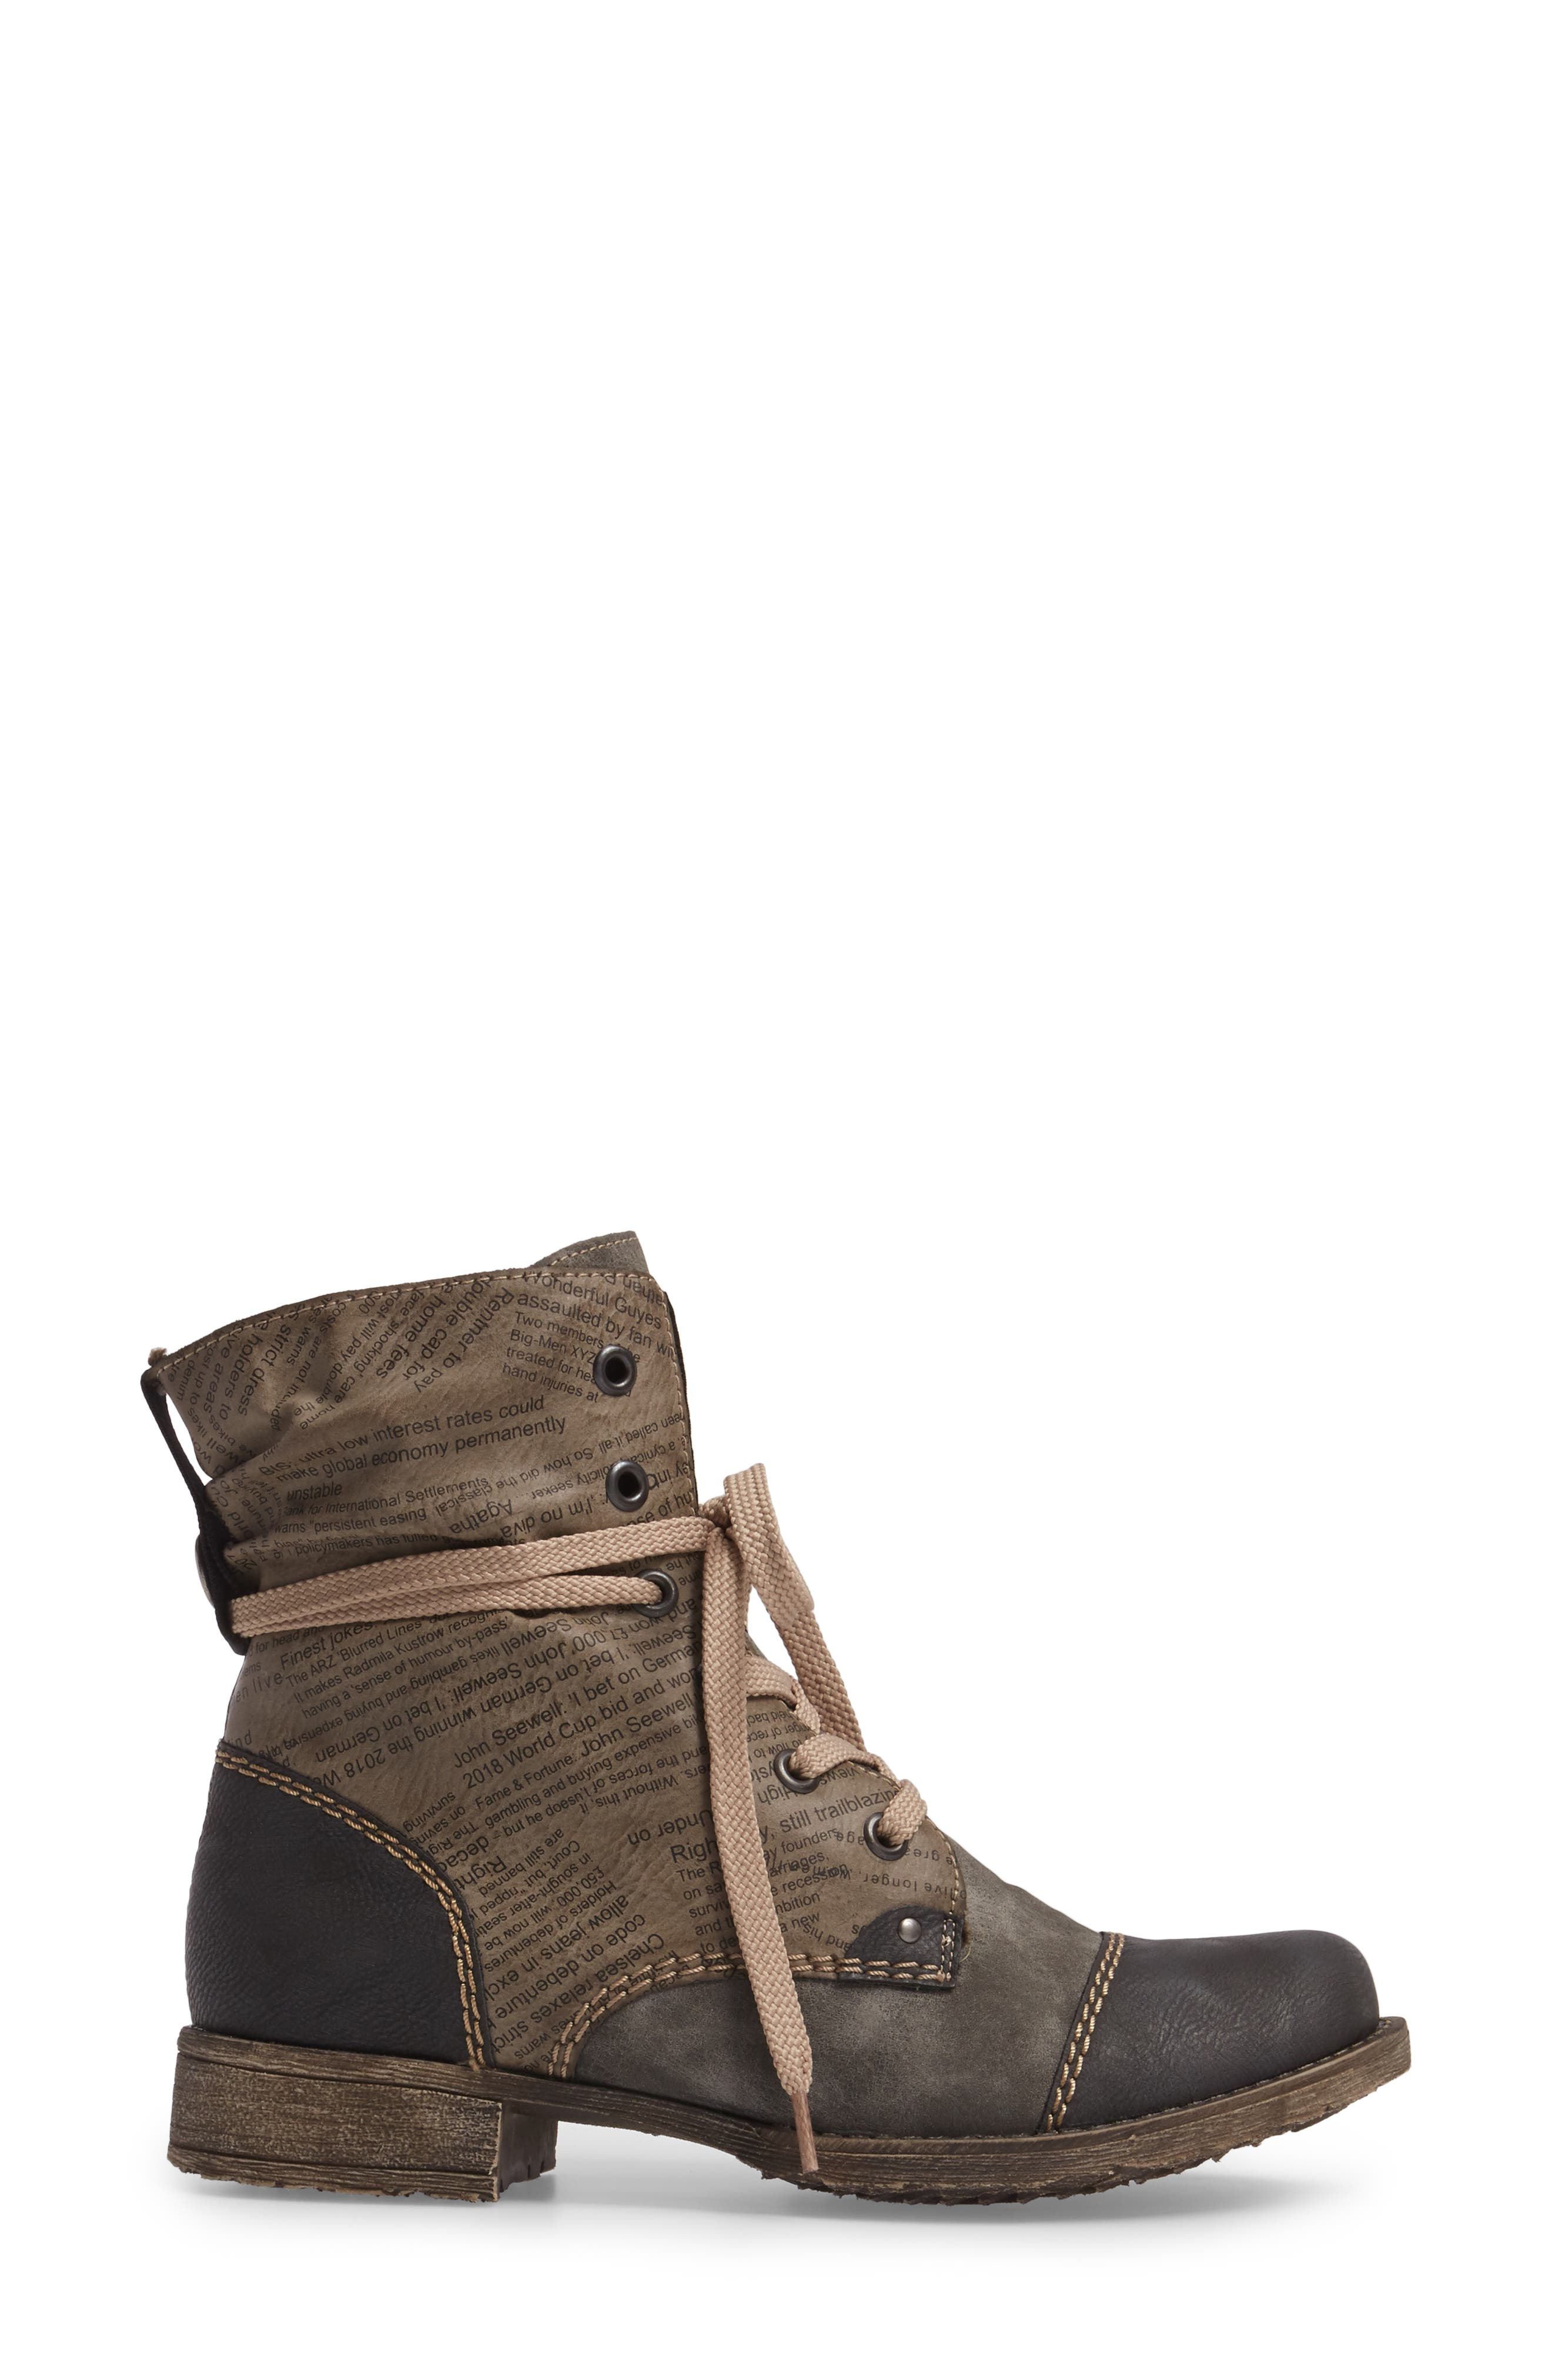 Payton 22 Lace-Up Boot,                             Alternate thumbnail 3, color,                             Smoke Faux Leather